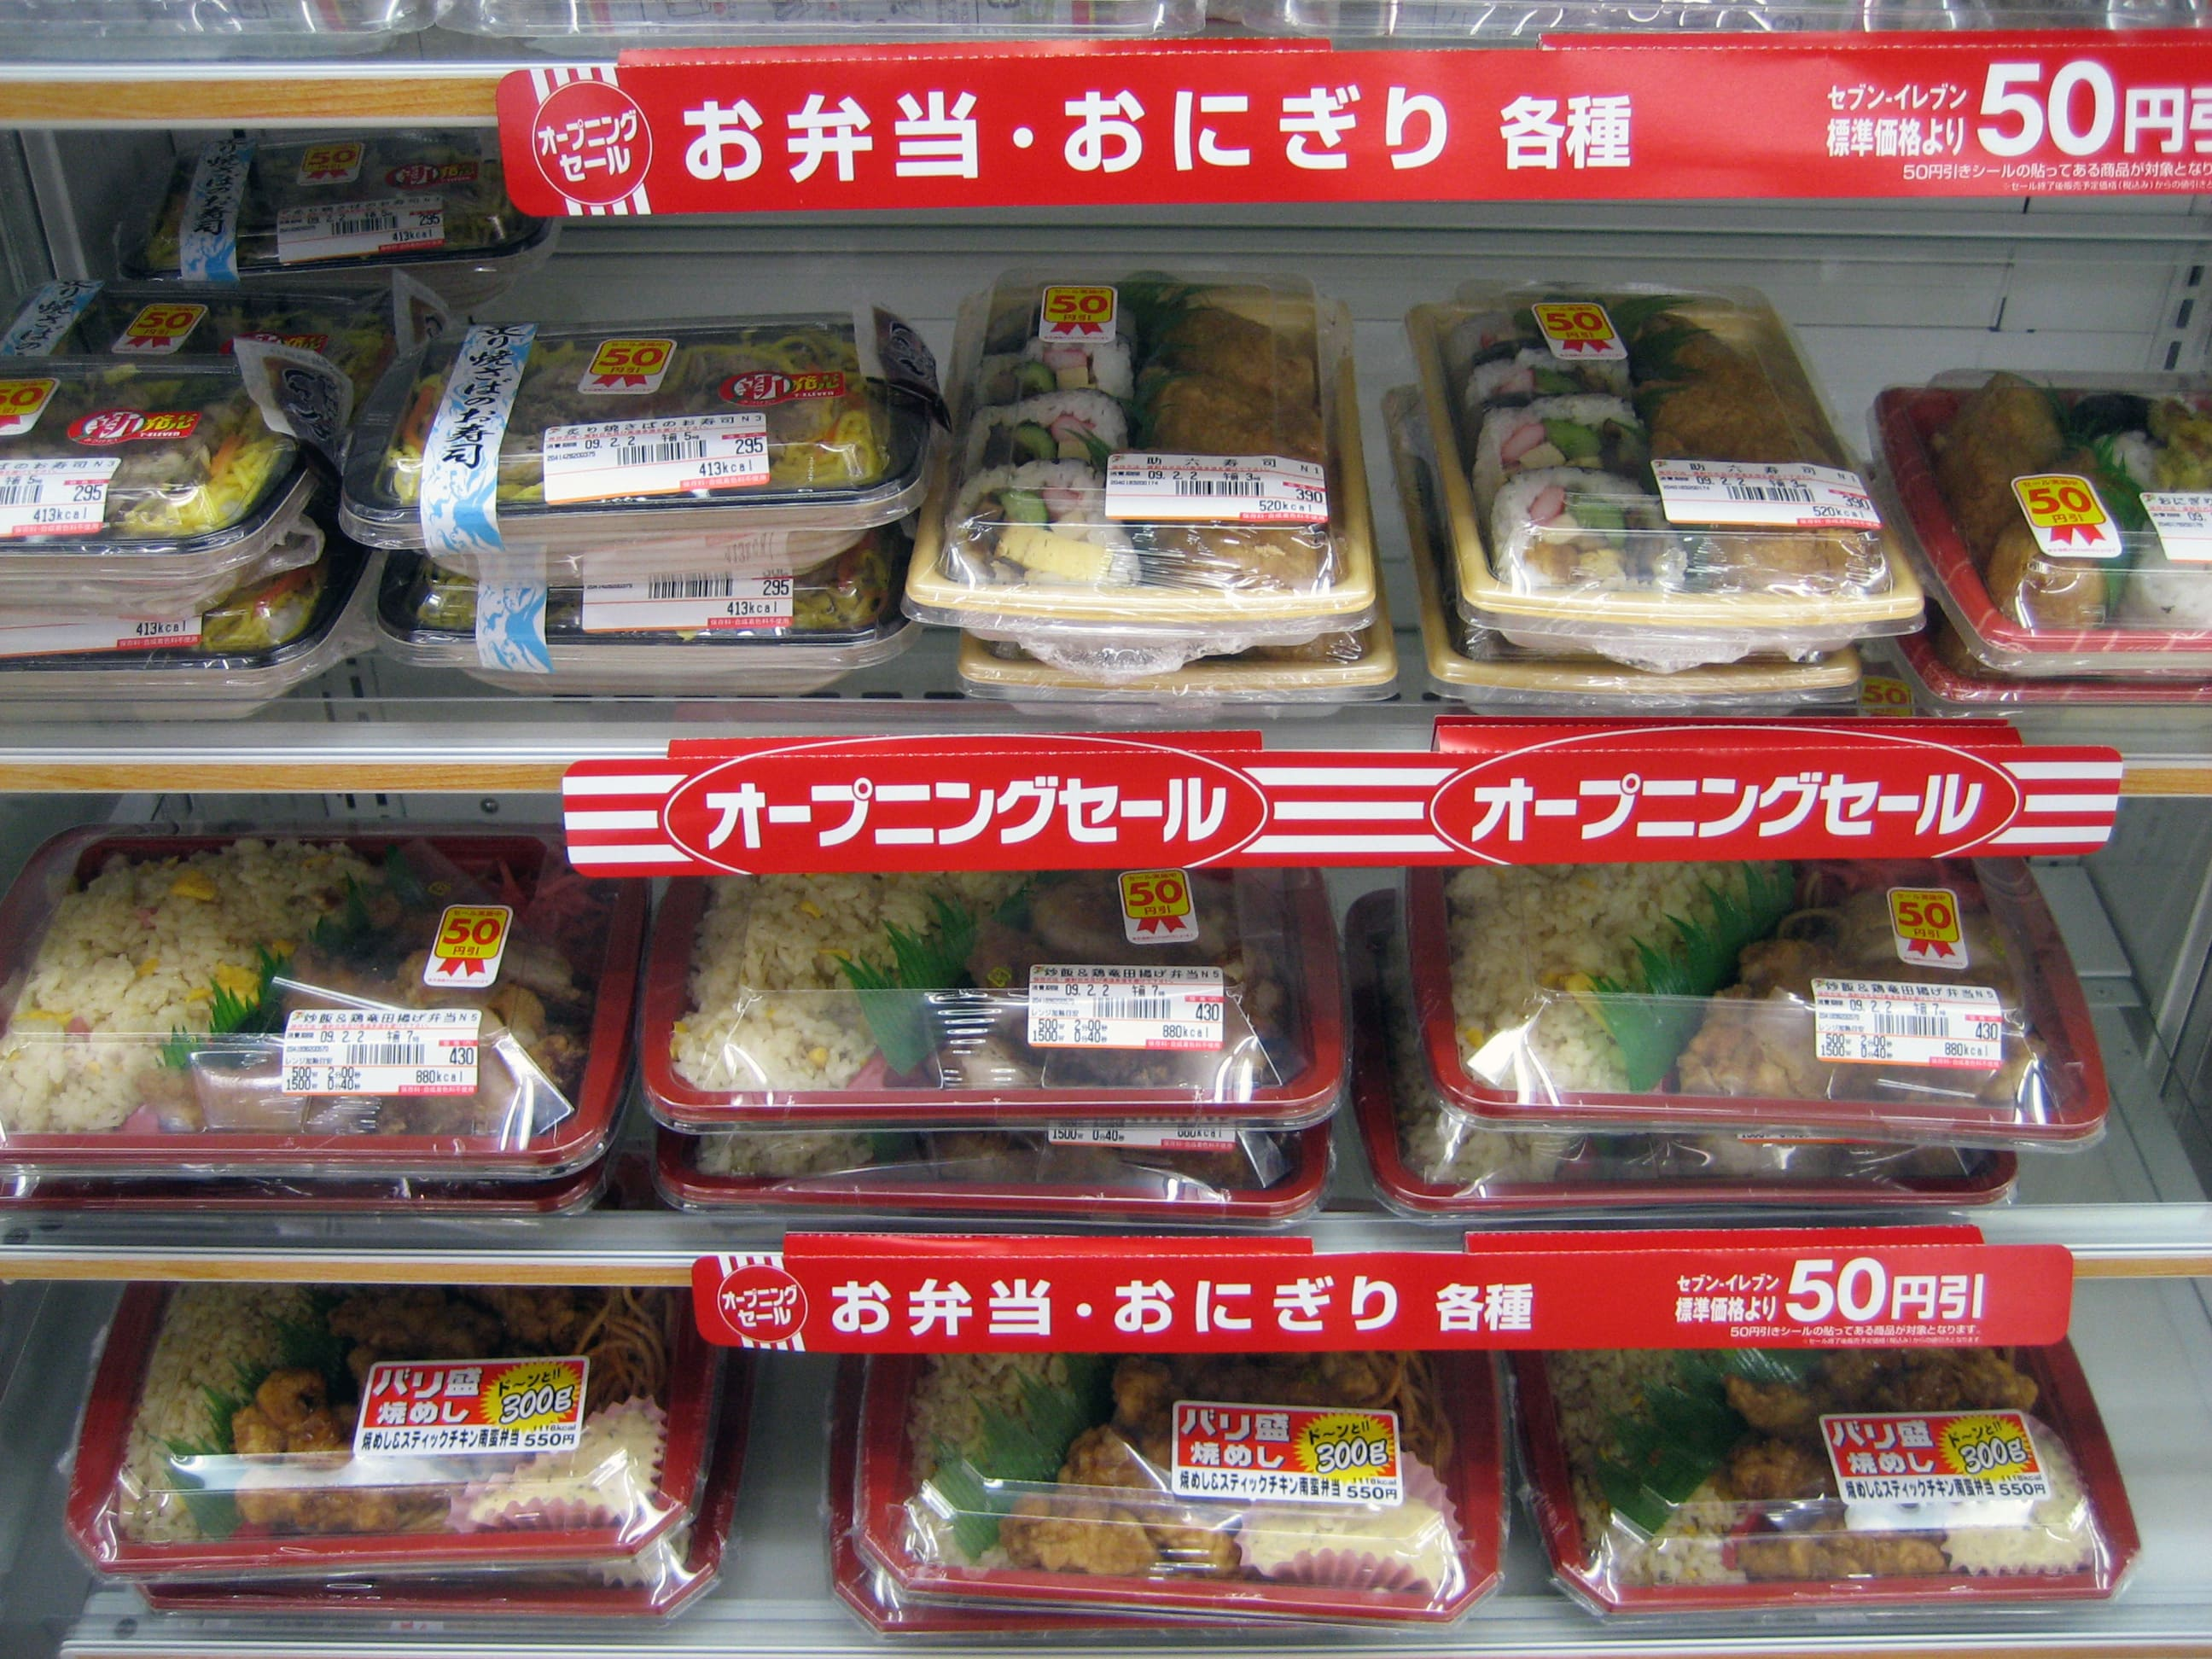 10 Items To Buy From Japanese 7-Eleven Convenience Stores